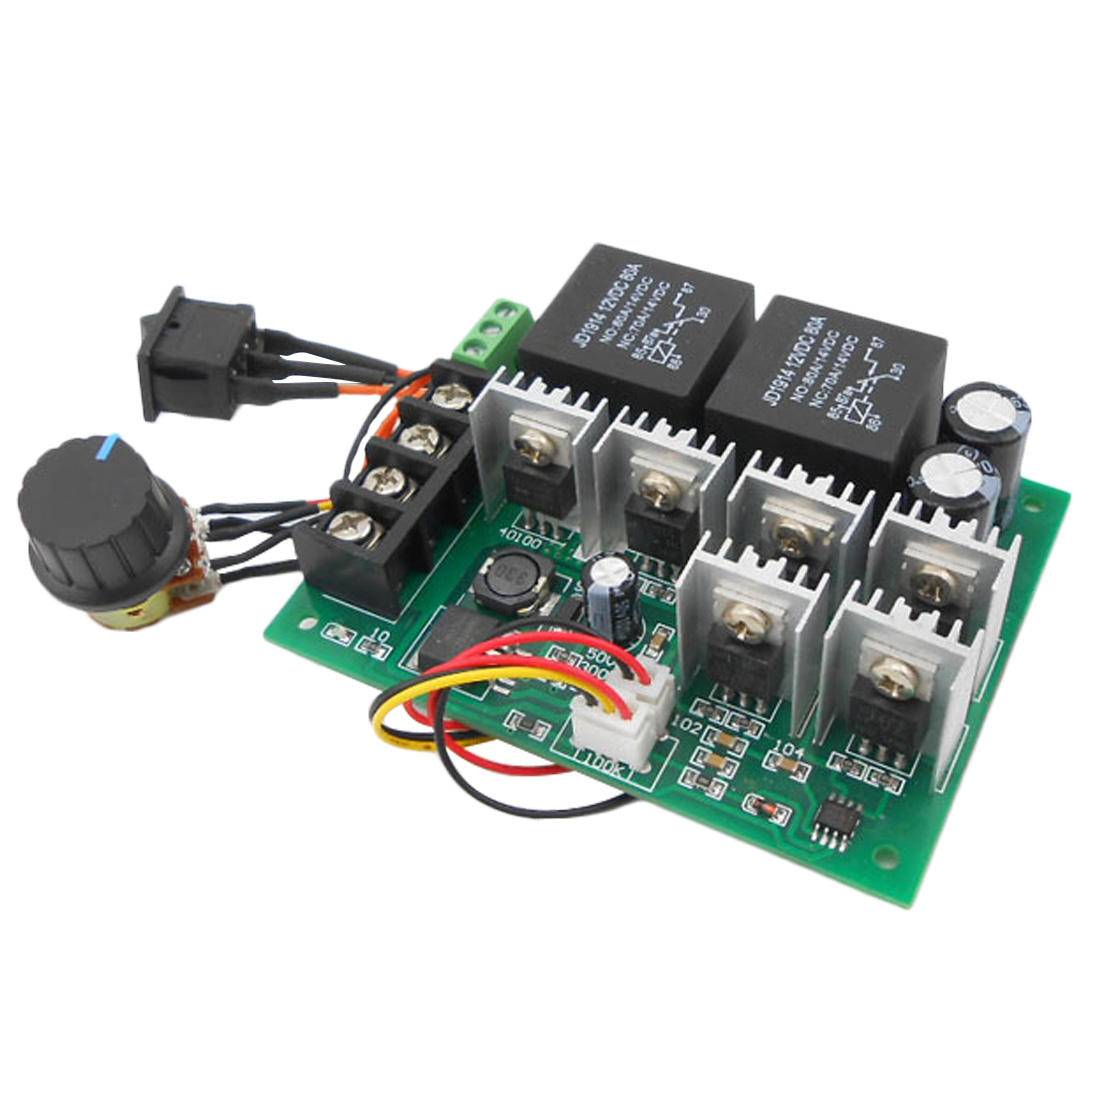 1PCS DC 10V-55V 12/24/36V 40A Motor Speed Controller Electric PWM Speed Control Regulator With CW CCW Reversible Switch1PCS DC 10V-55V 12/24/36V 40A Motor Speed Controller Electric PWM Speed Control Regulator With CW CCW Reversible Switch